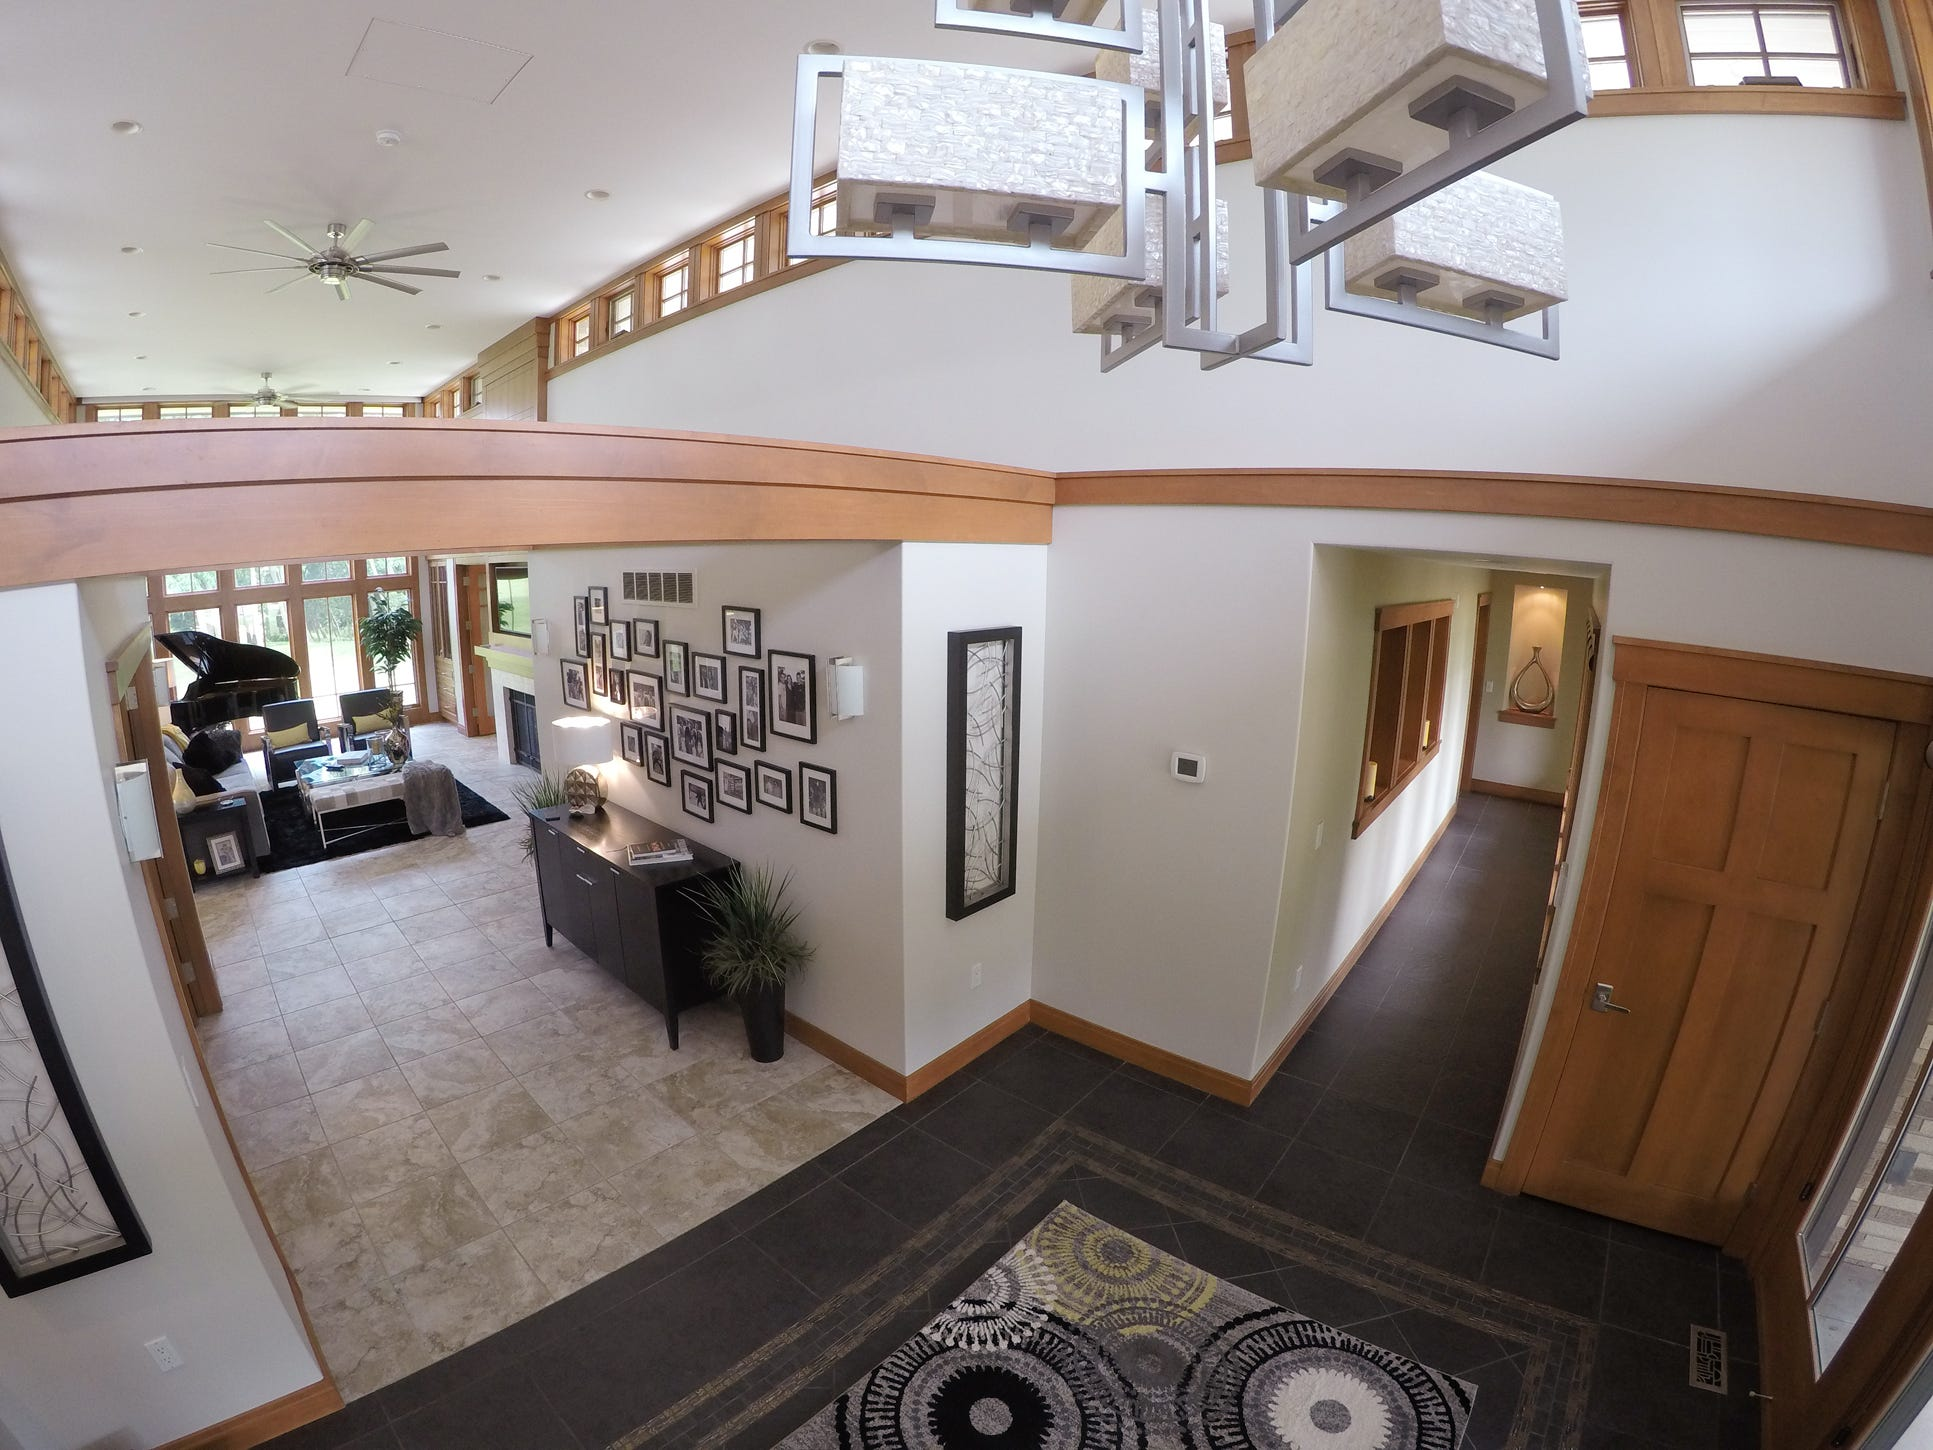 Frank Lloyd Wright Inspired Houses cool spaces: $1.35m home captures frank lloyd wright style